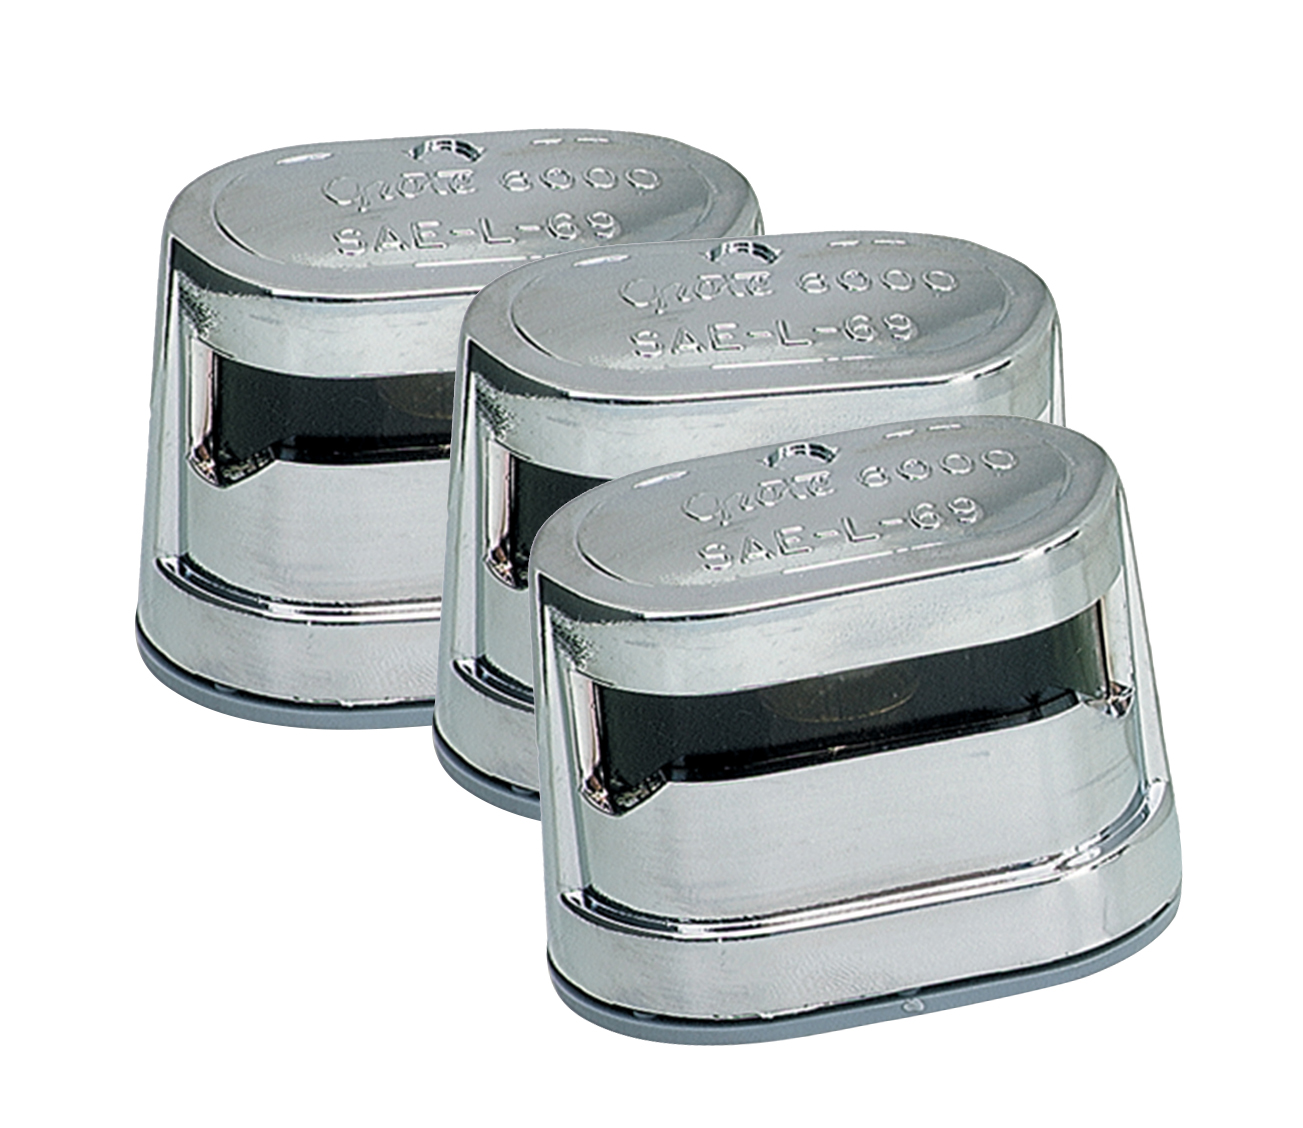 Grote Industries - 60011-3 – Resealable License Light, Triple Chrome, Bulk Pack